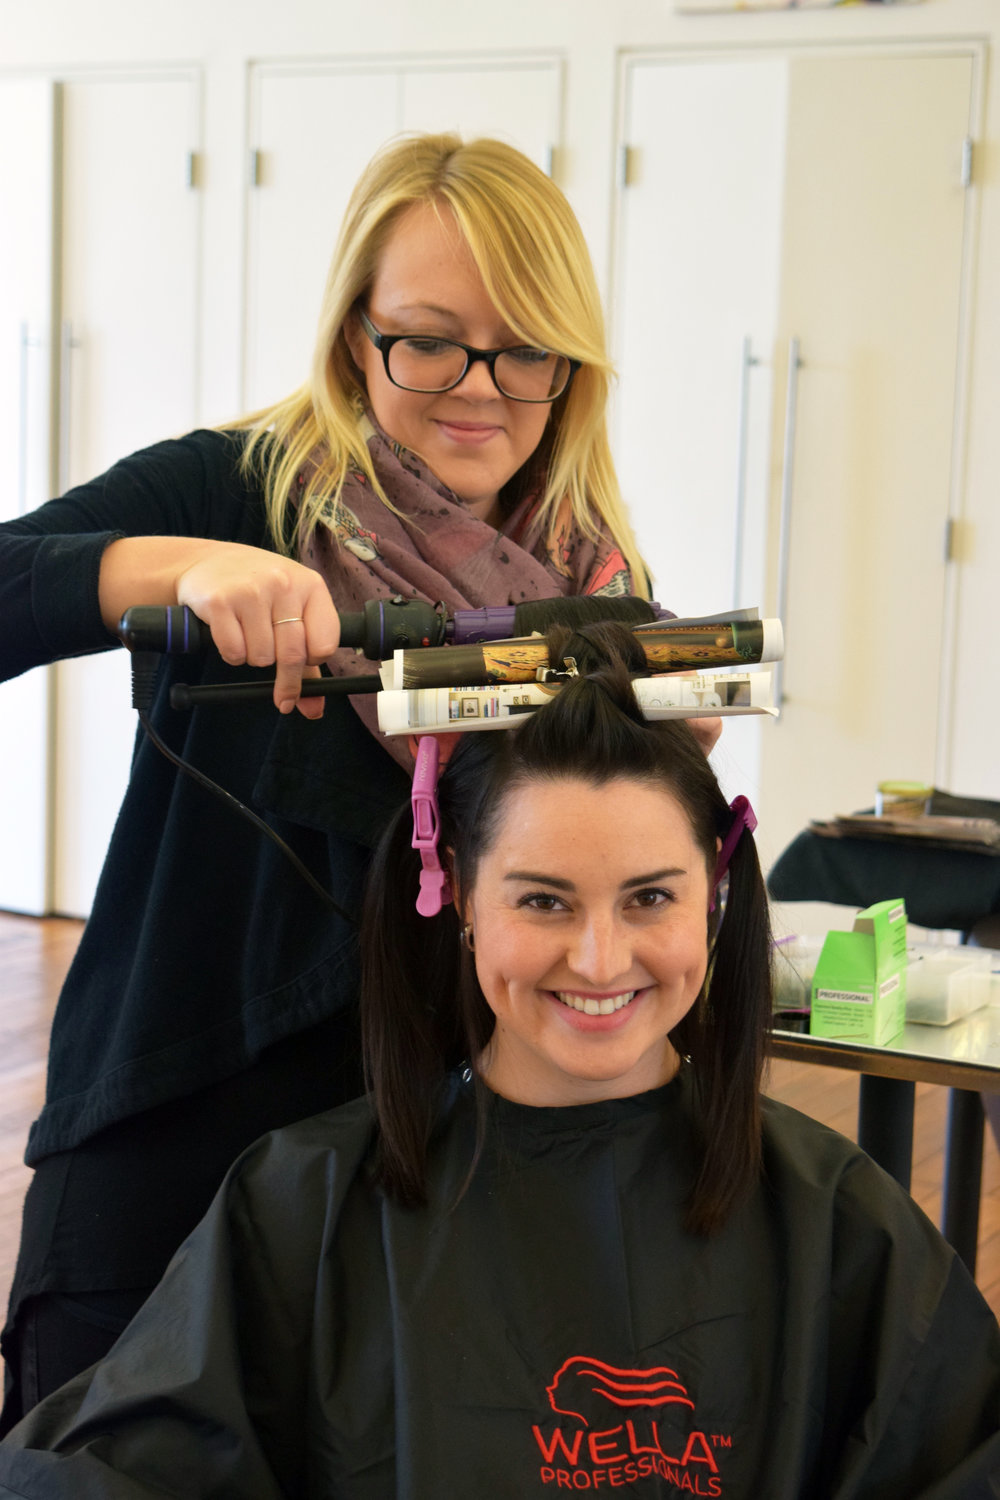 Mandy Asberry creates curly hair styles  in downtown Raleigh at Alter EGO Hair Salon and Blow Dry Bar.